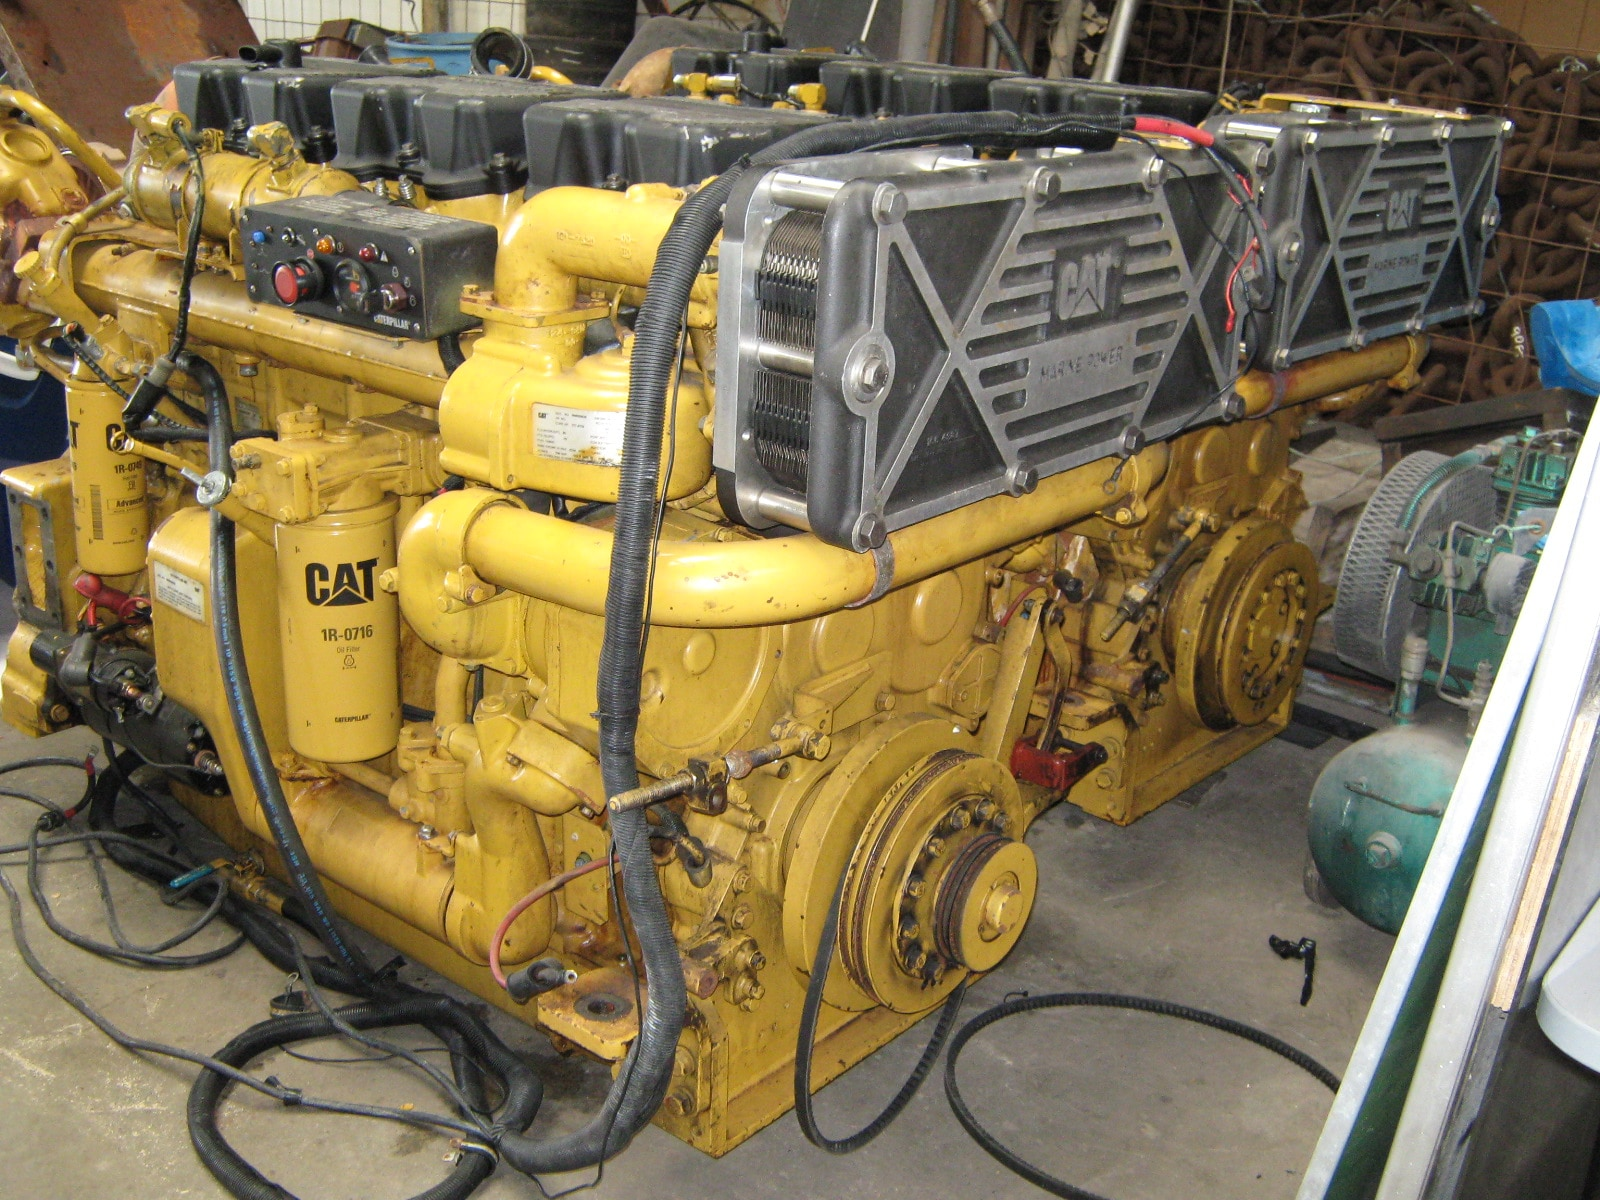 Caterpillar 3406E Marine Engine-800hp Pair - MEG4610